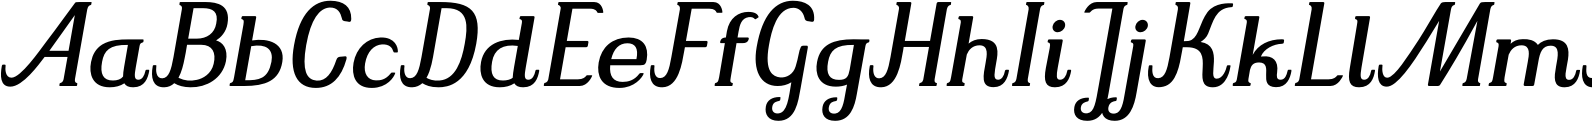 Mrs Green Regular Italic Font